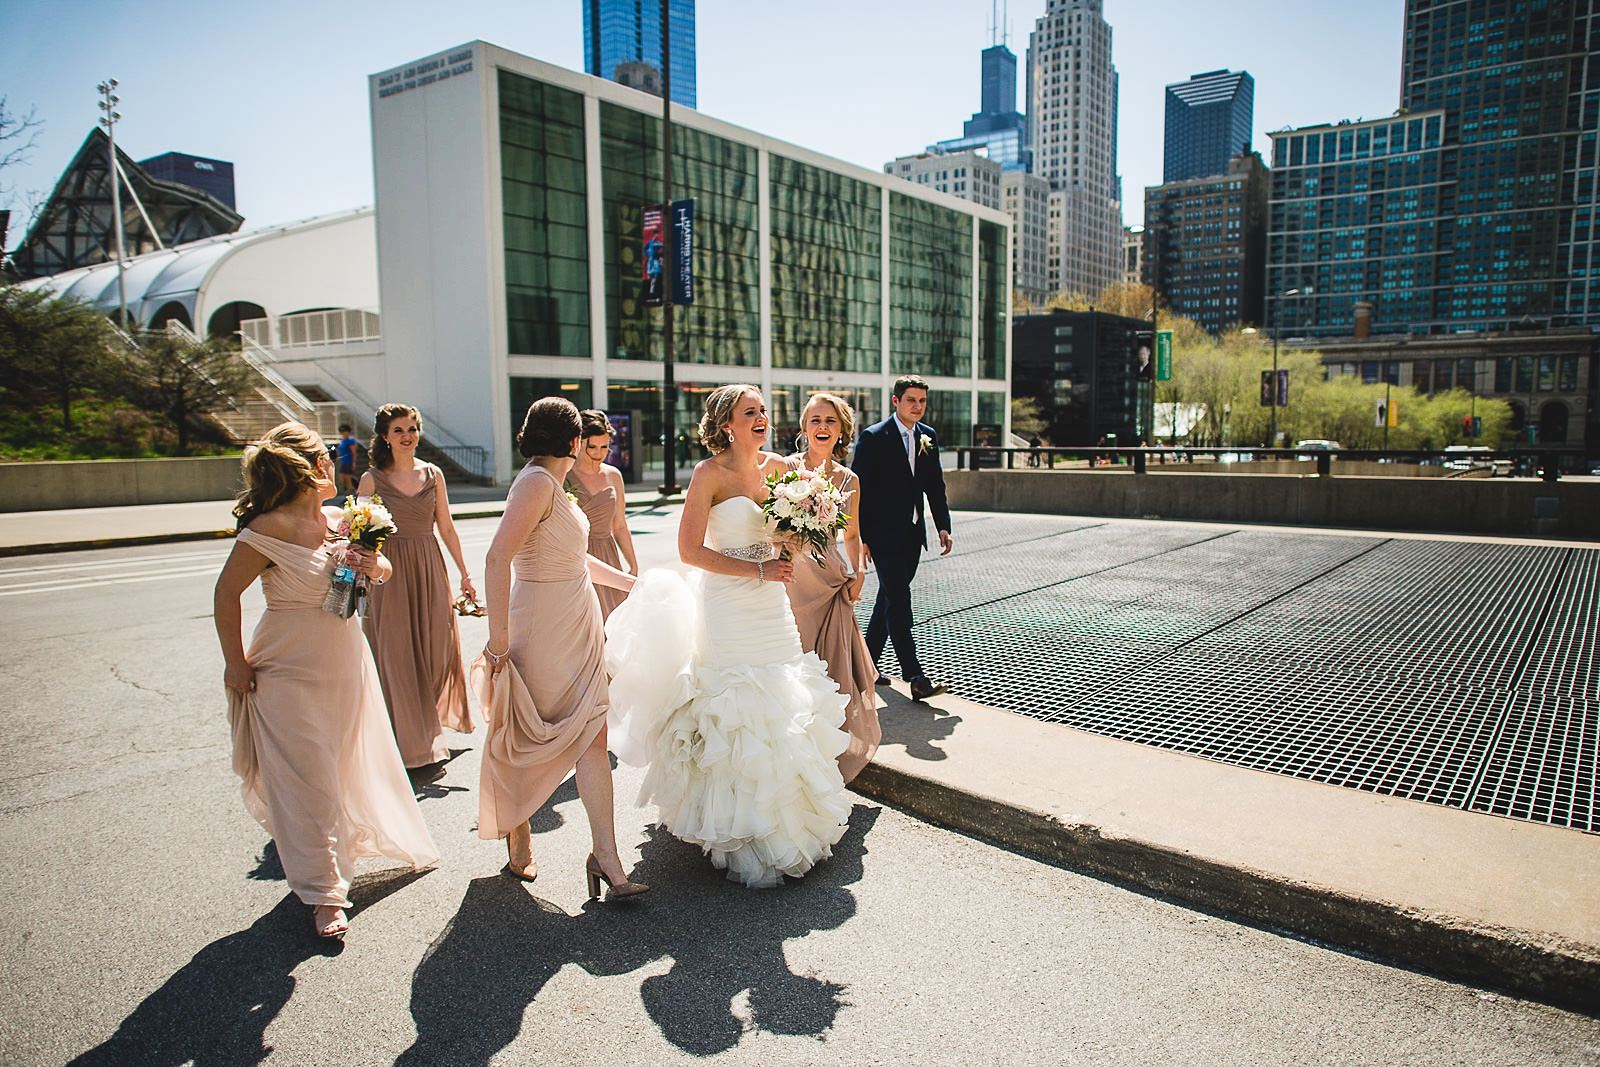 32 1 walking to mid america wedding photos - Mid America Club Wedding Photography / Hannah + Jay